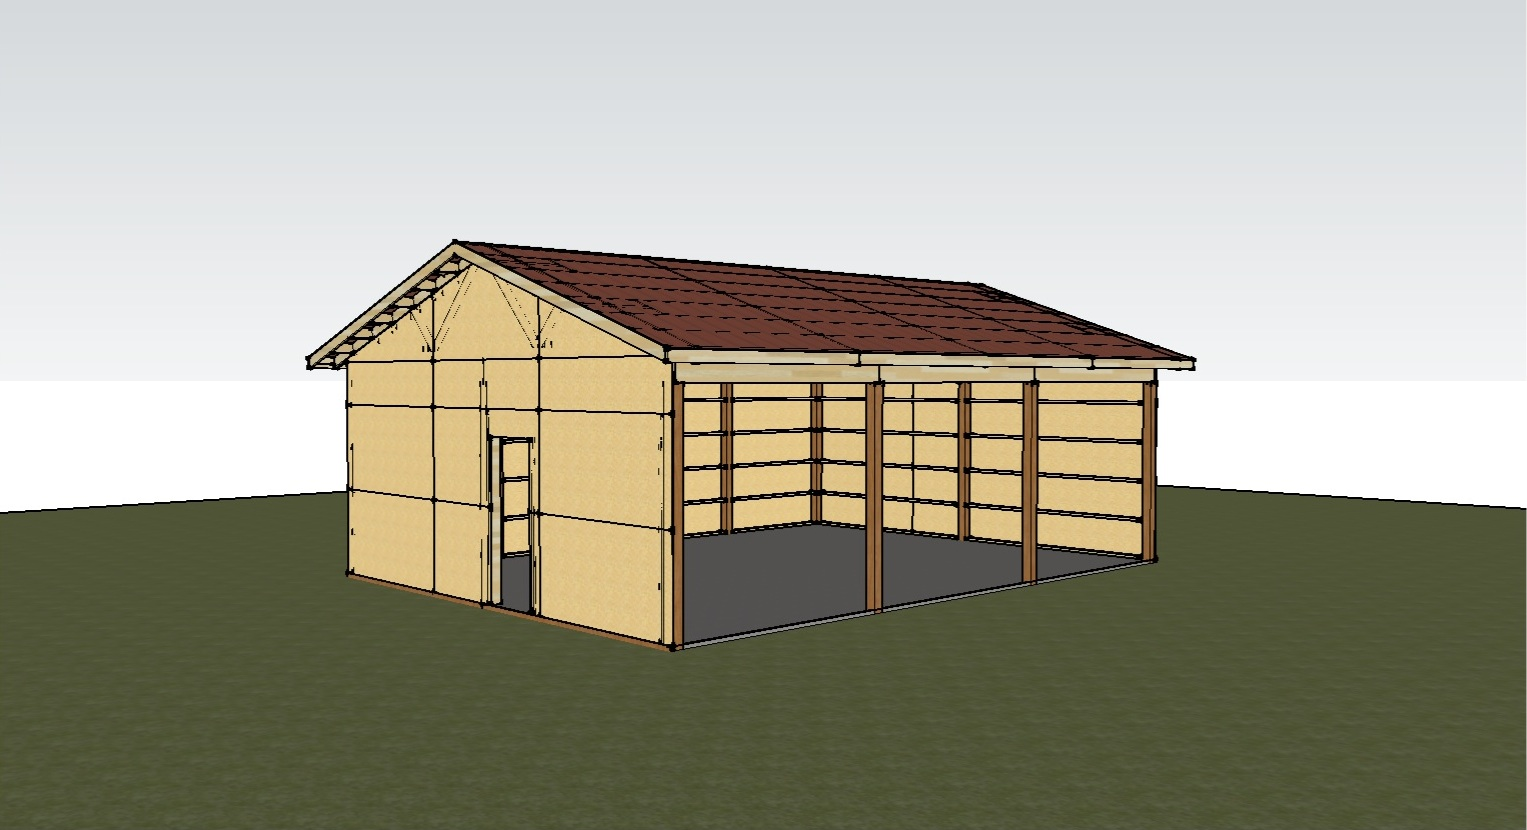 Pole barn plans and materials redneck diy for How to design a pole barn